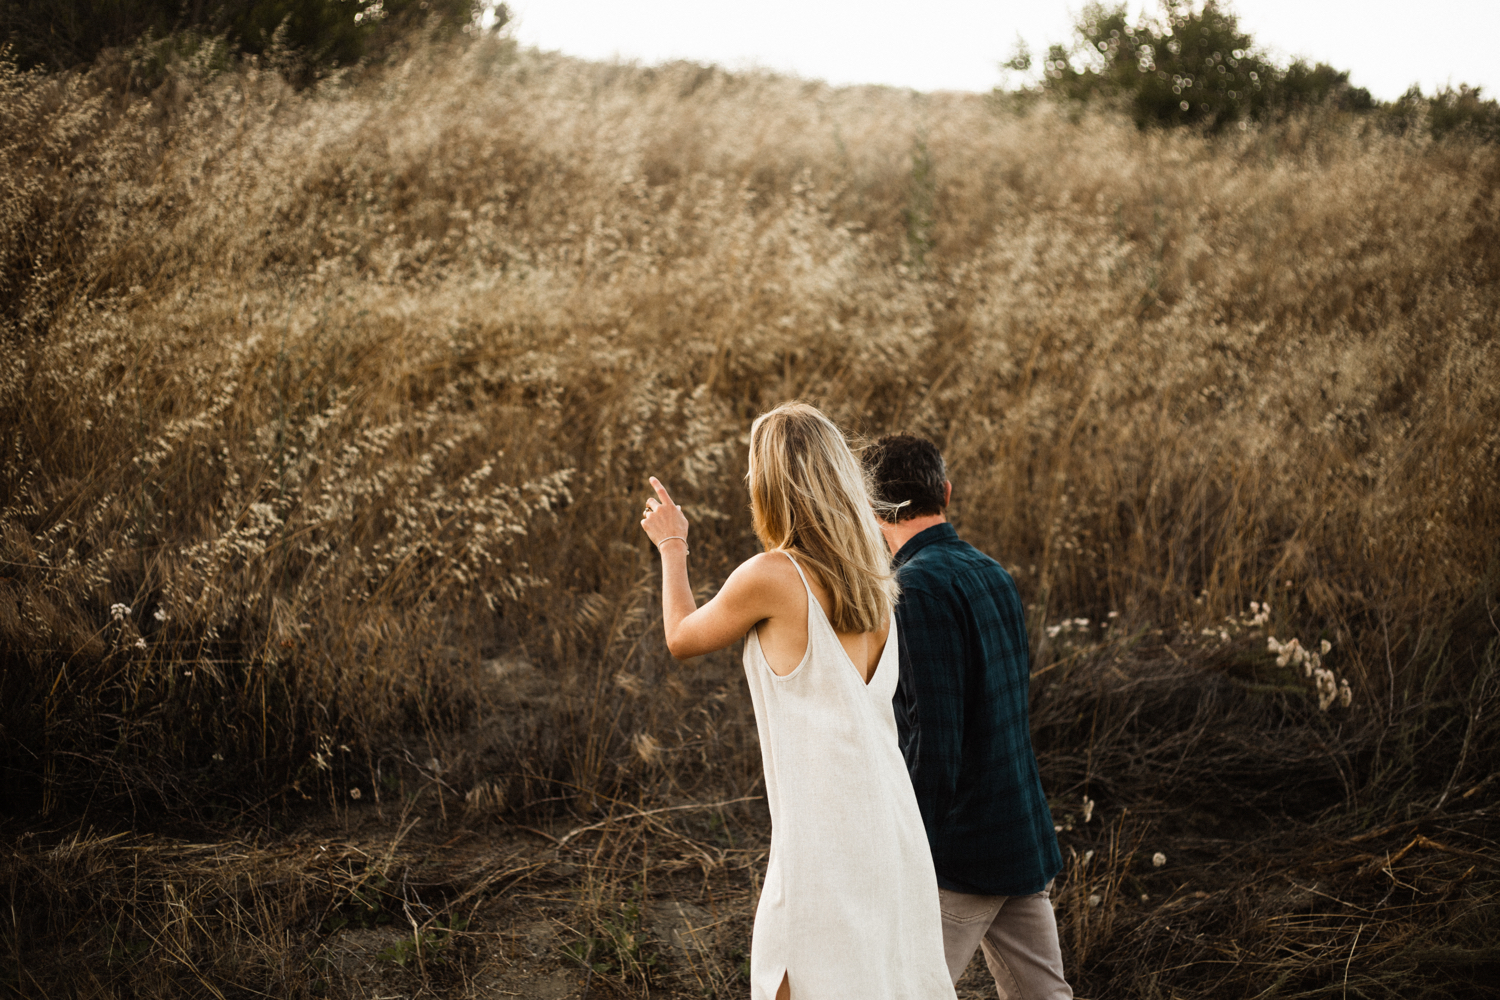 Engagement session shoot photos photography Orange County photographer nature film Talega Home session California16.jpg